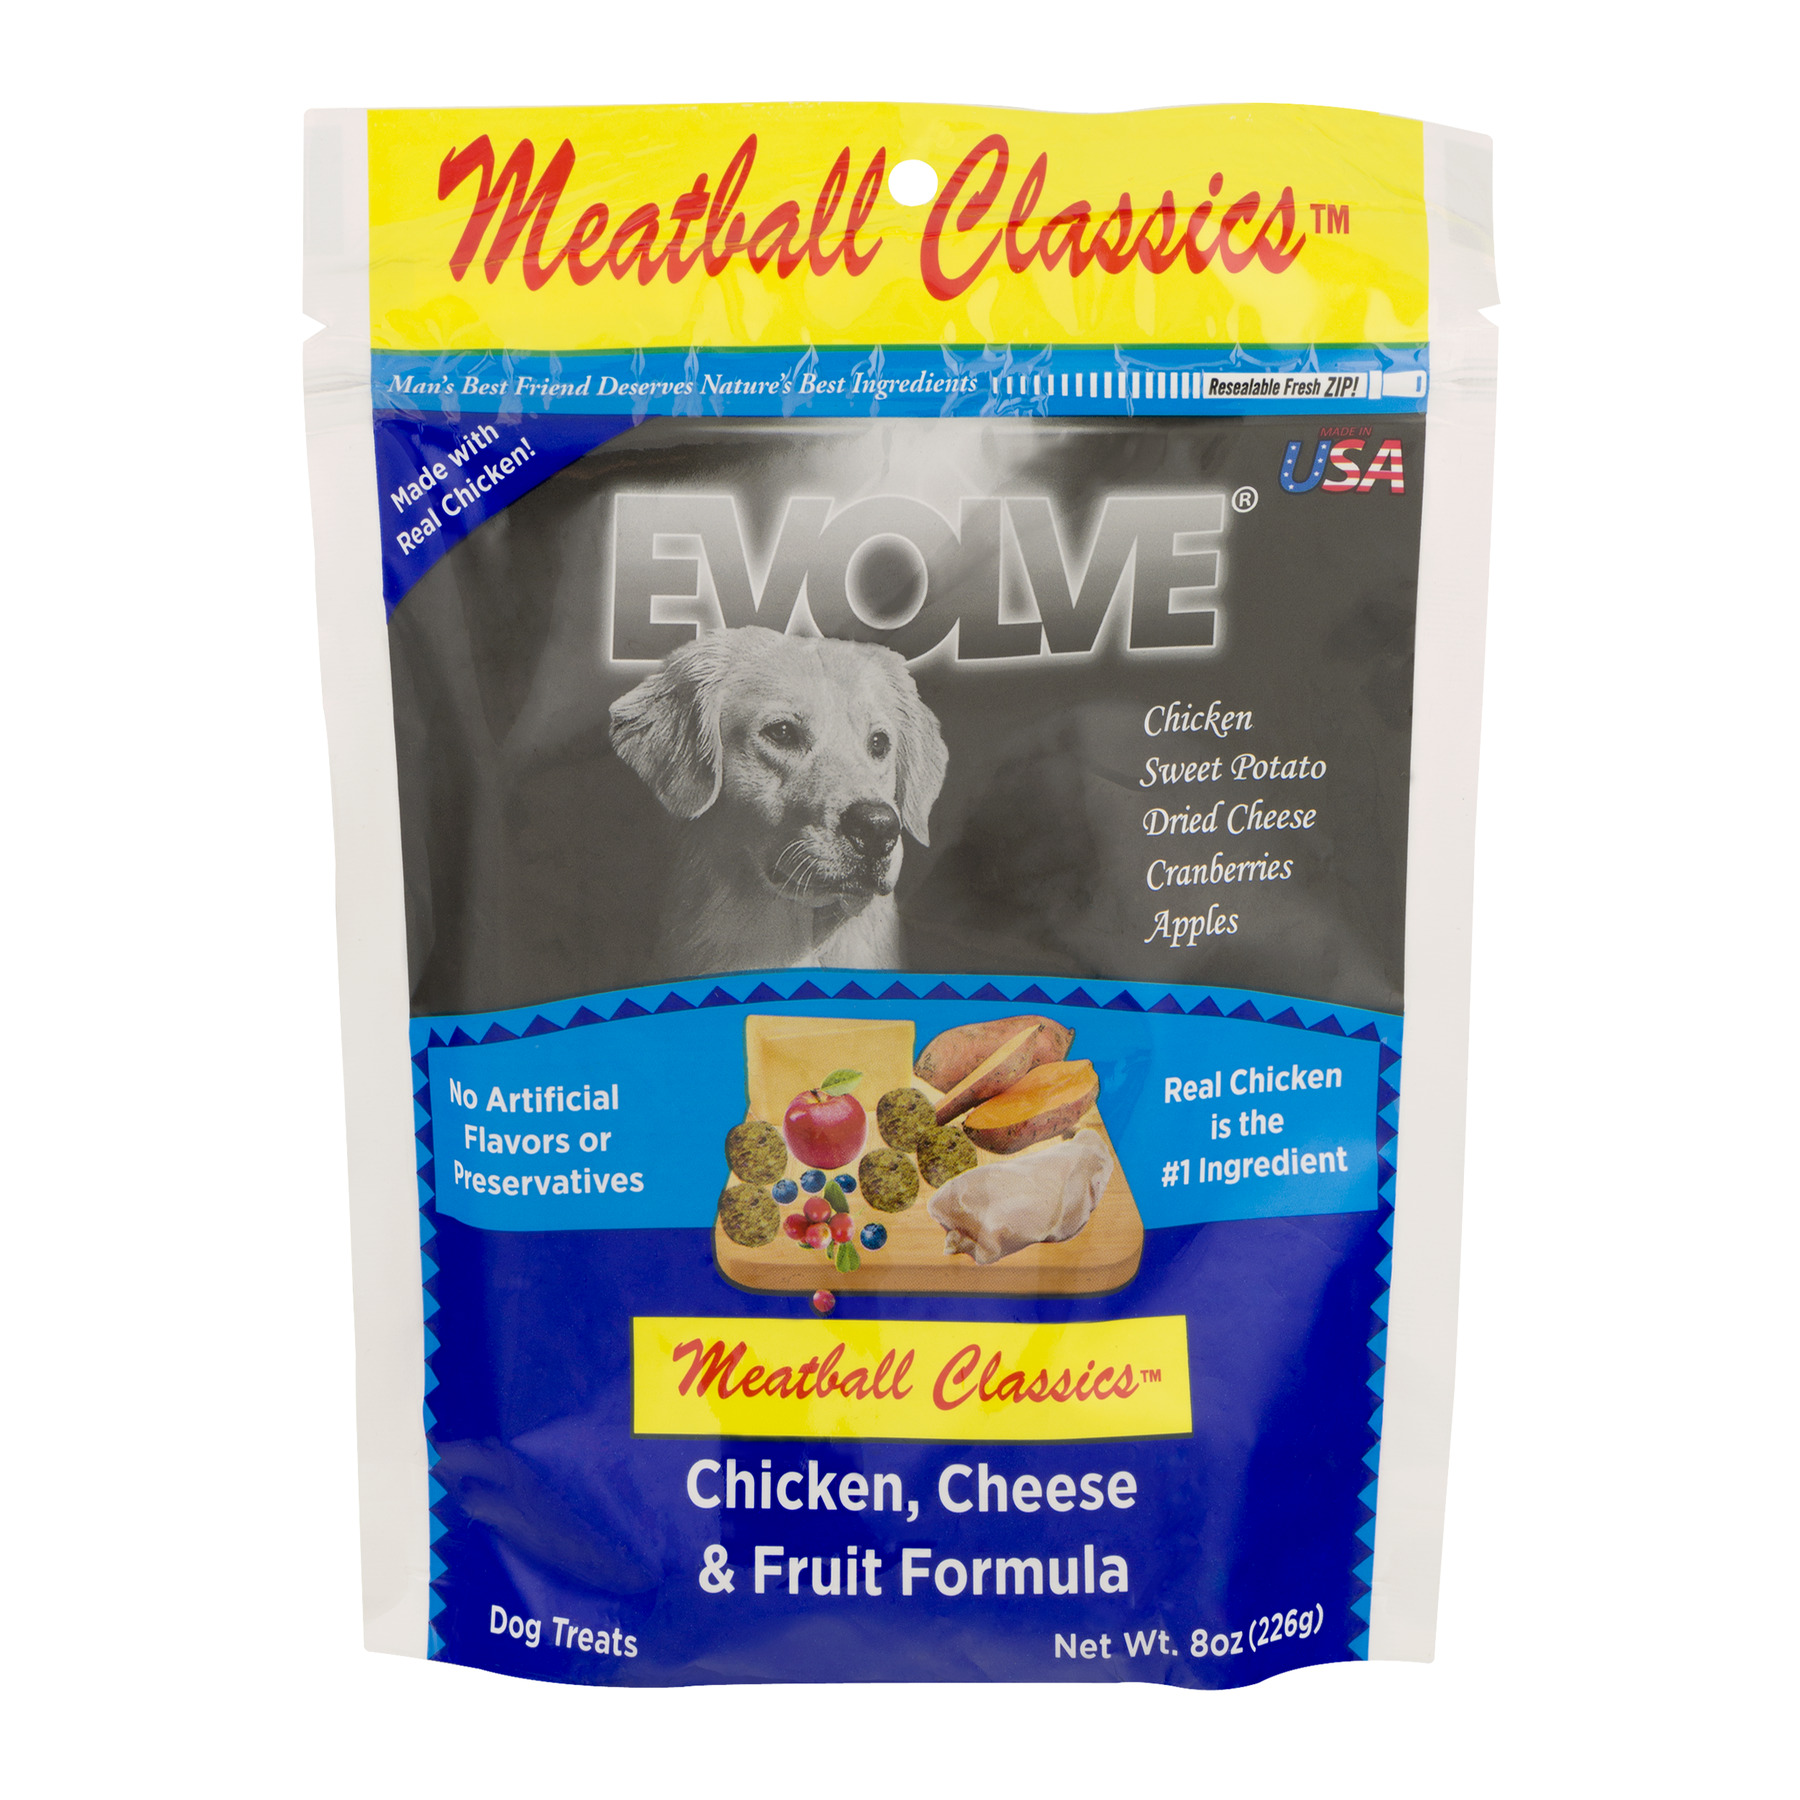 Evolve Chicken, Cheese and Fruit Formula Meatball Dog Treats, 8 oz by Sunshine Mills